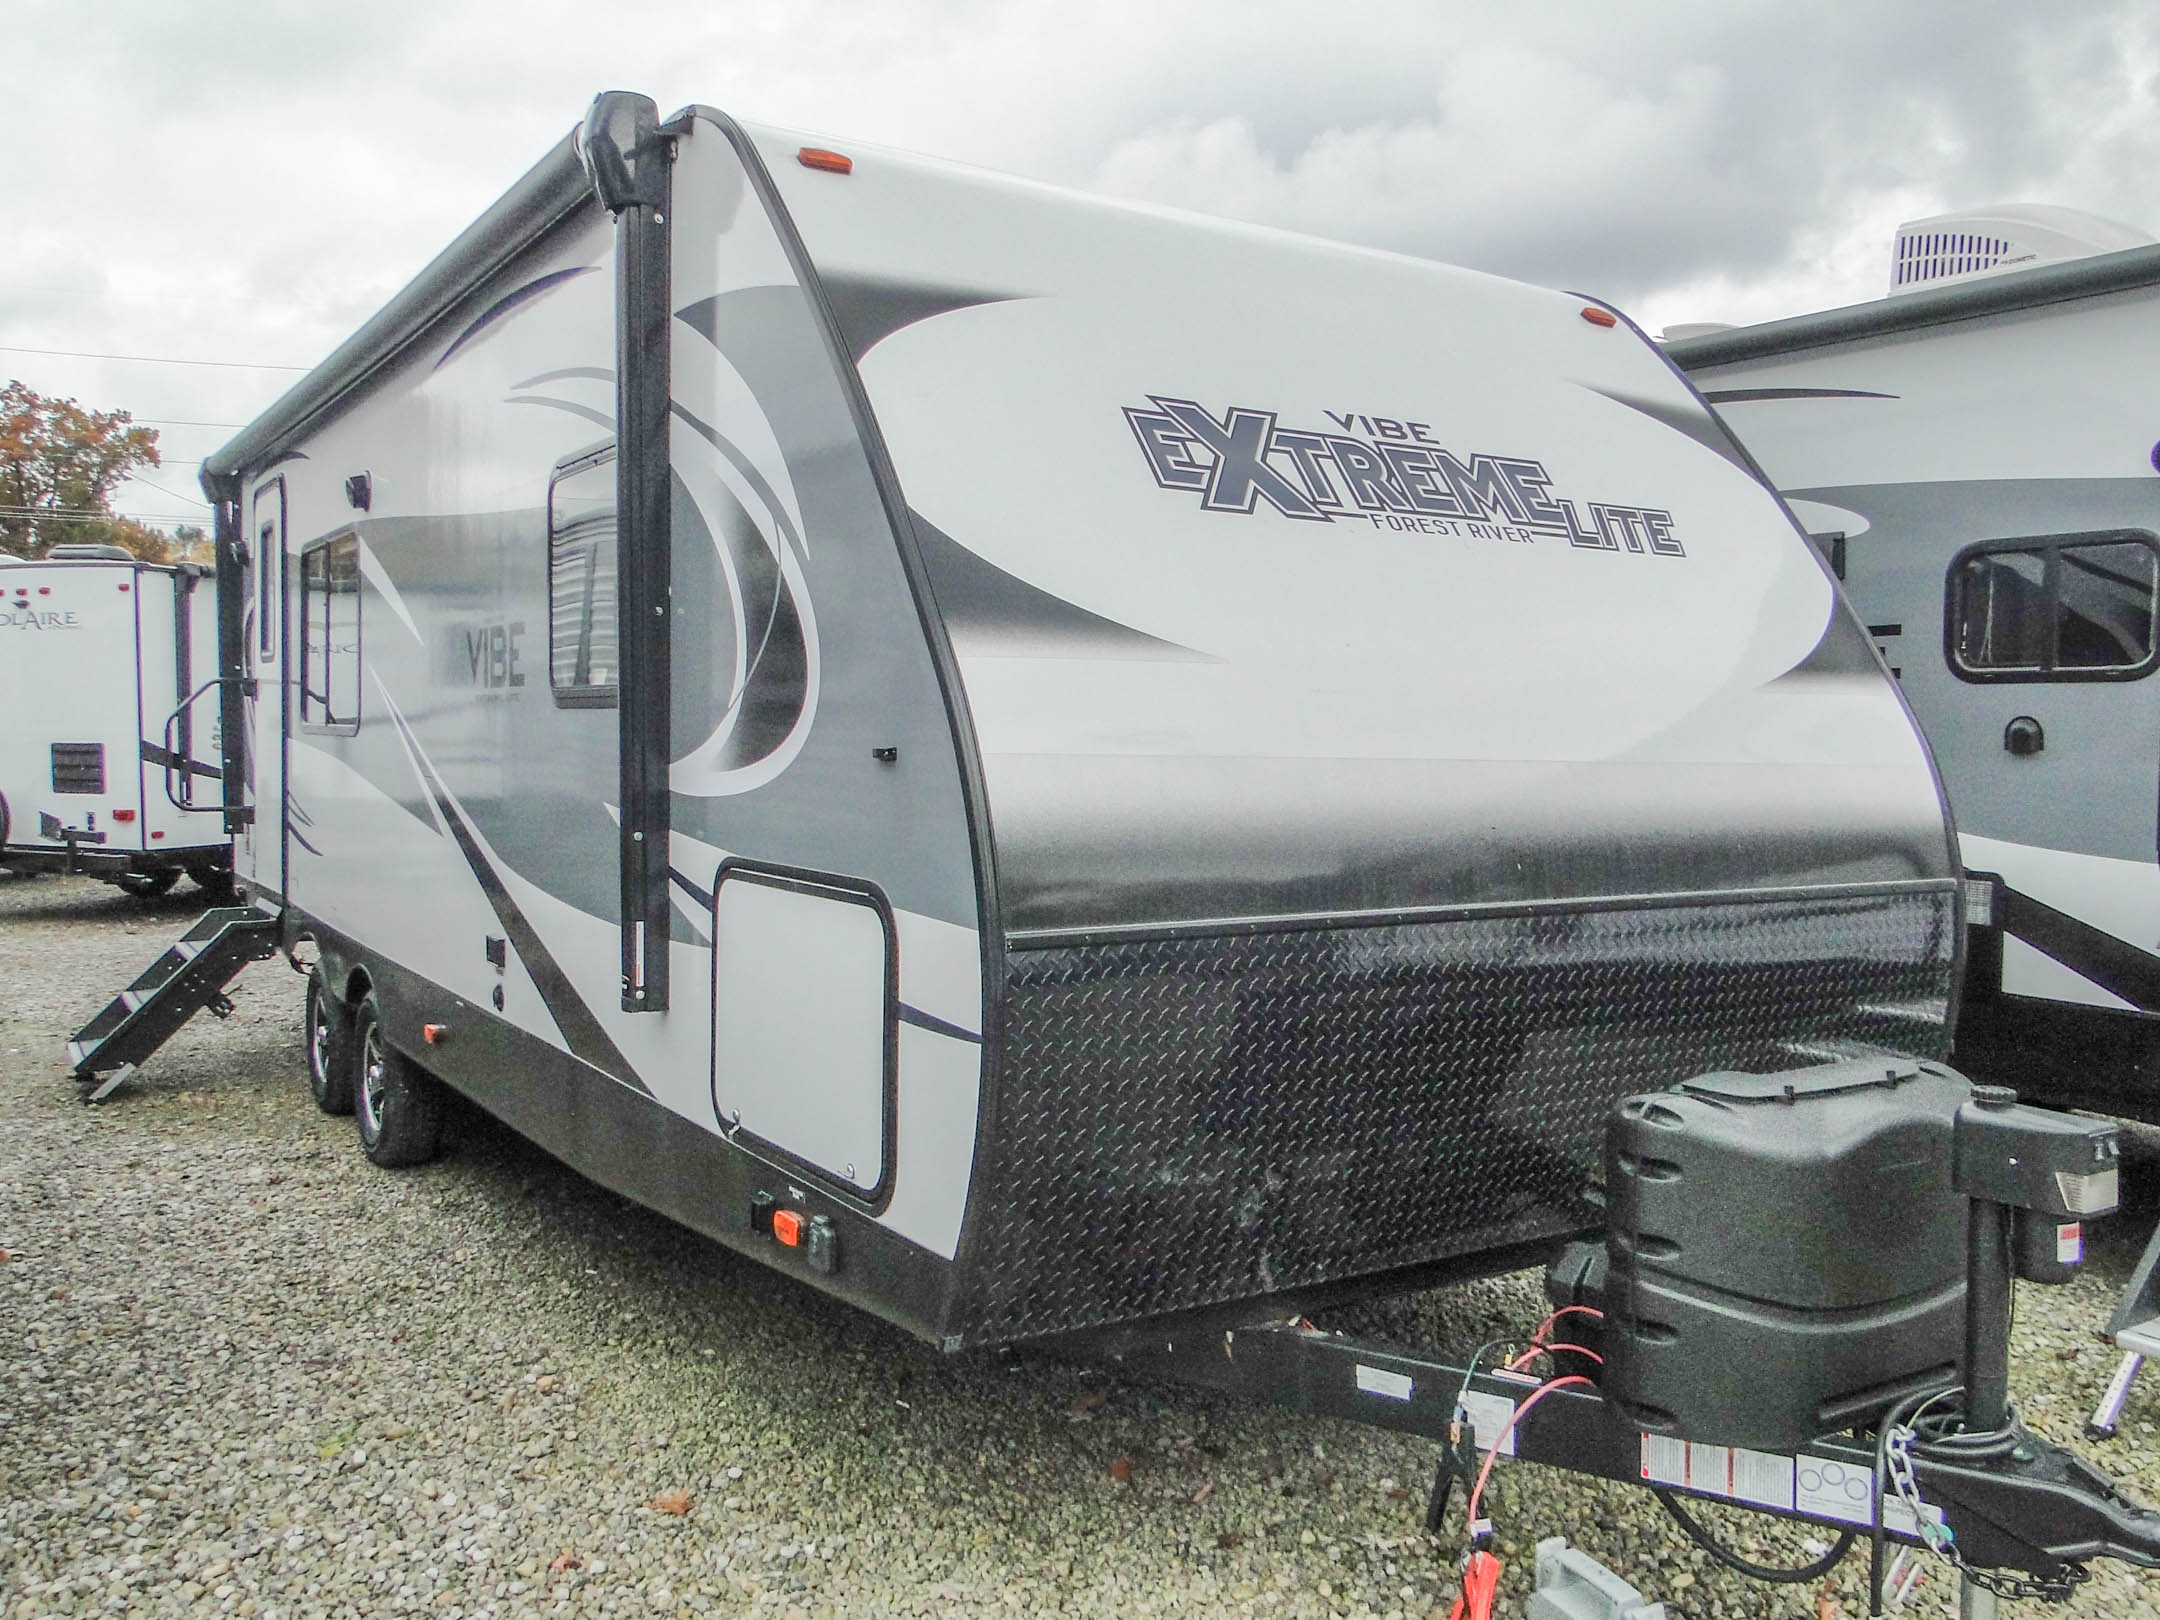 Forest River Vibe Extreme Lite ∣ Rv Wholesale Superstore